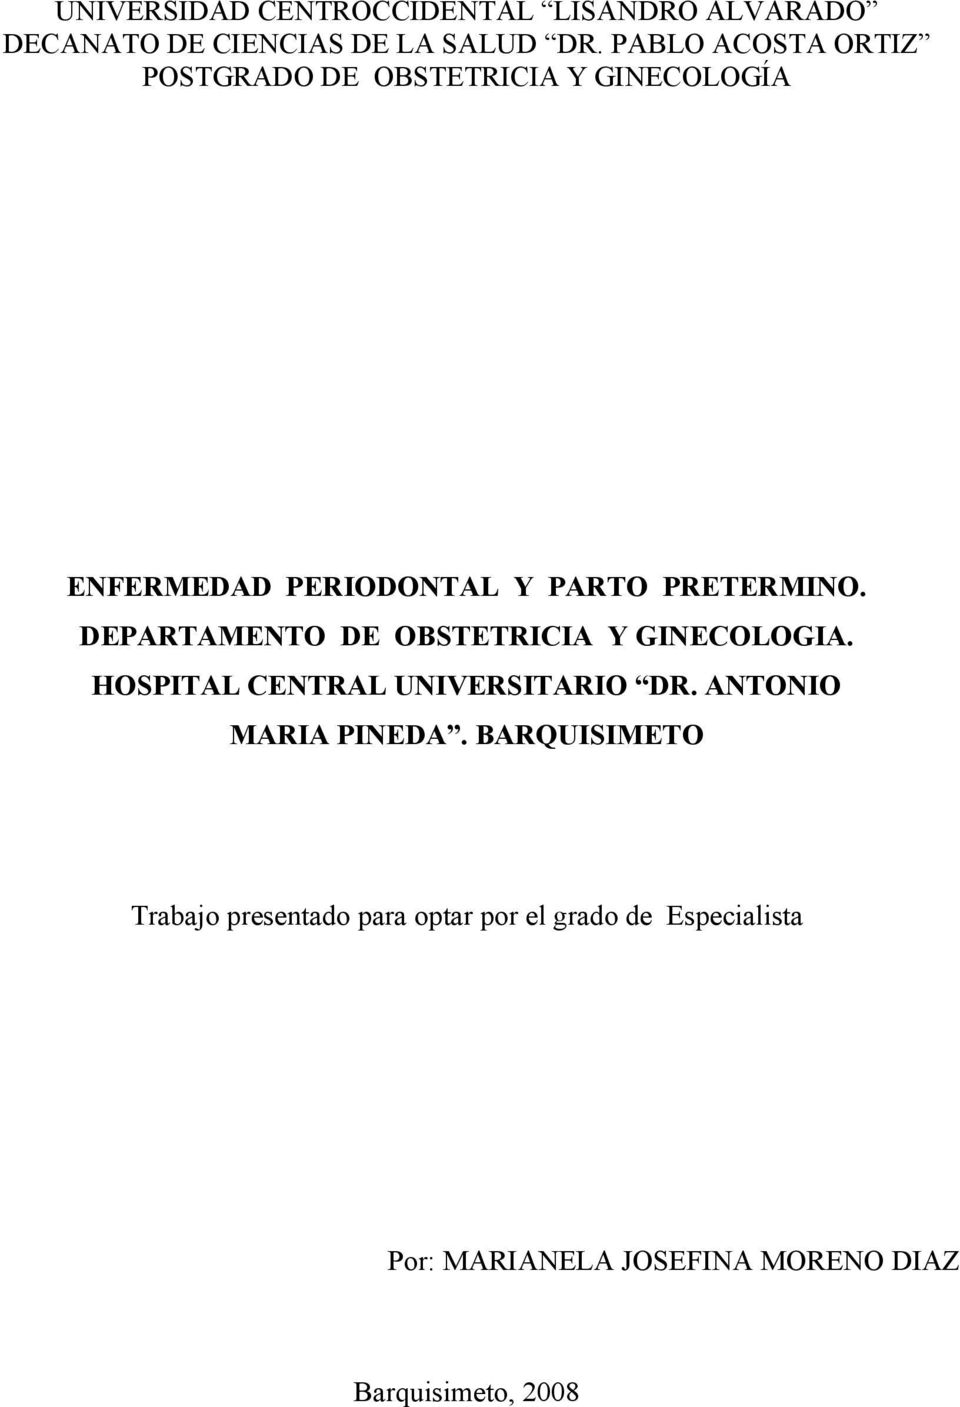 DEPARTAMENTO DE OBSTETRICIA Y GINECOLOGIA. HOSPITAL CENTRAL UNIVERSITARIO DR. ANTONIO MARIA PINEDA.